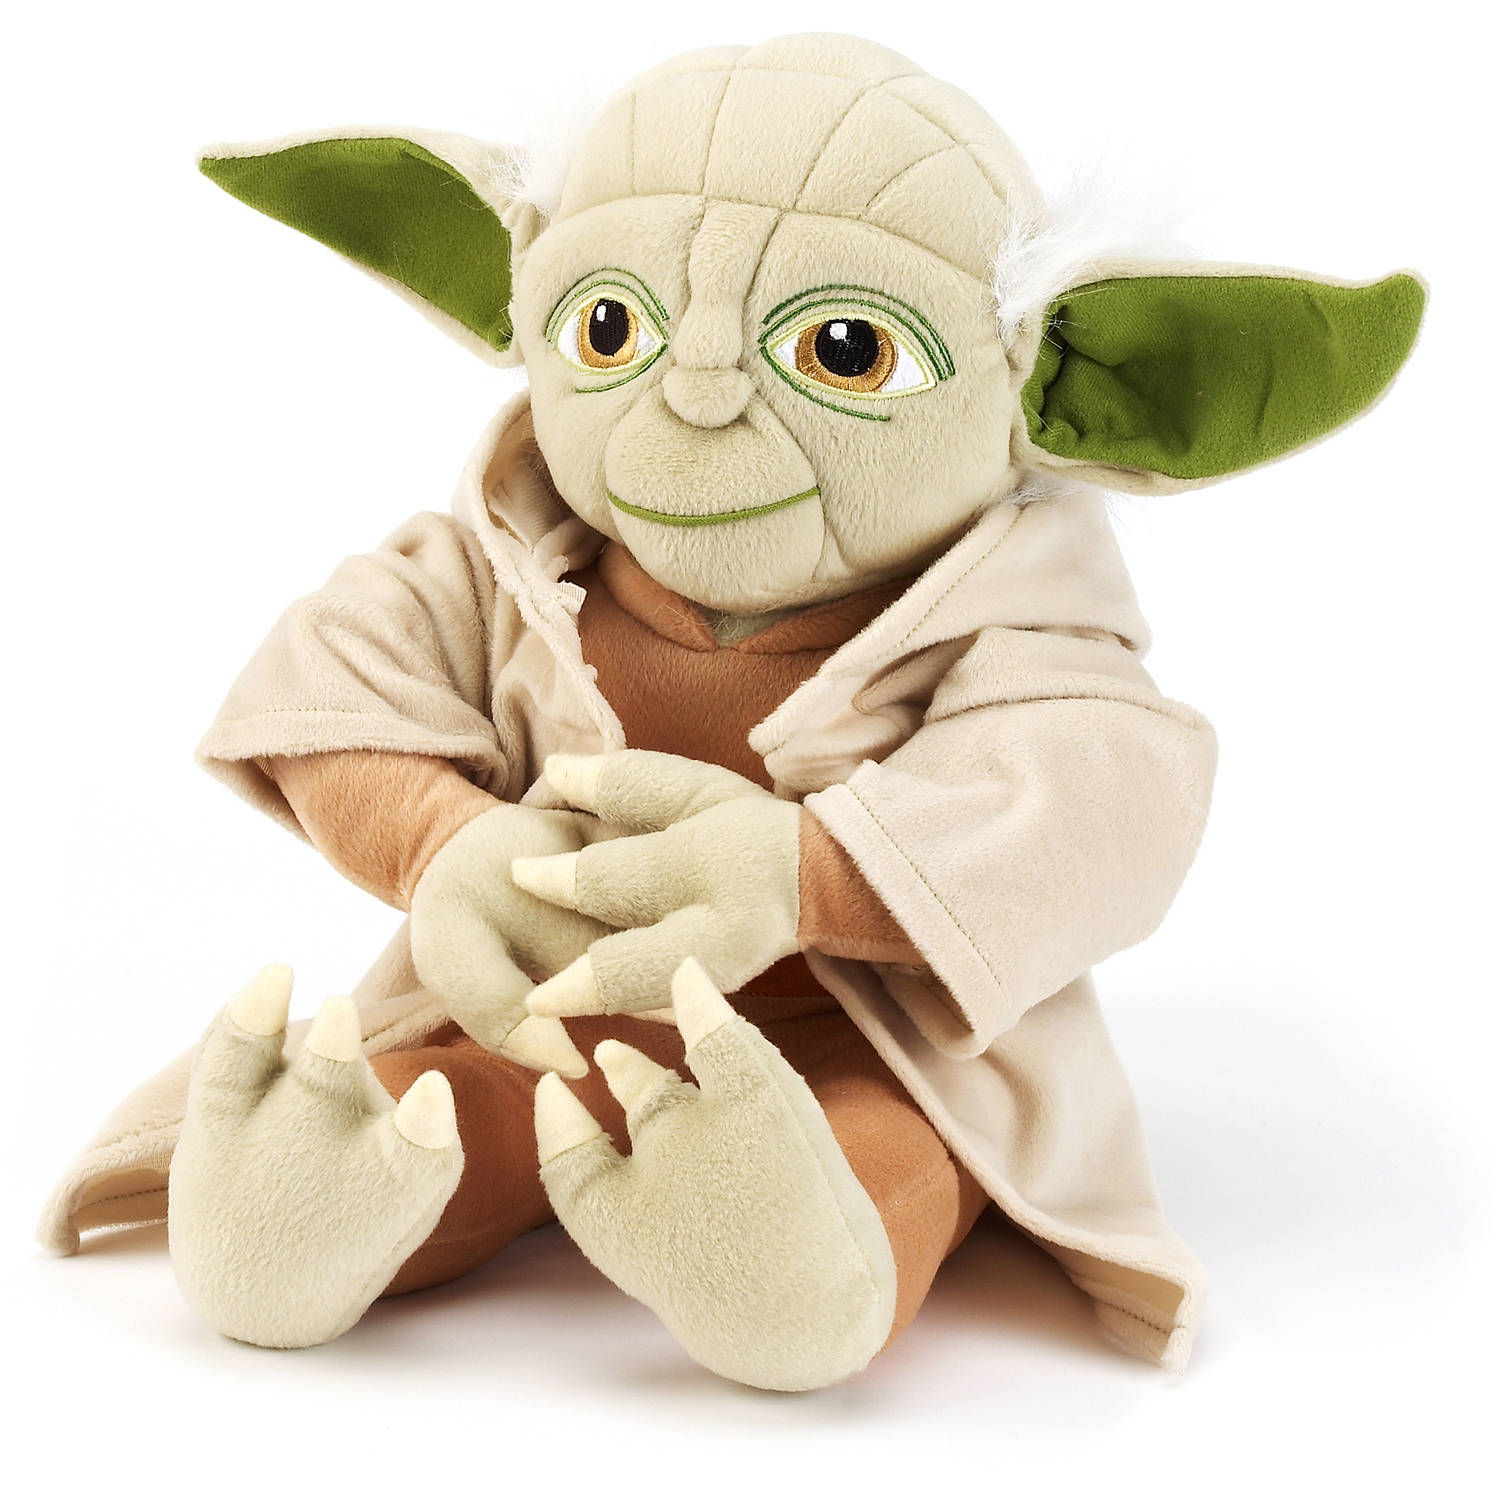 Star Wars - Yoda Cuddle Pillow Pal